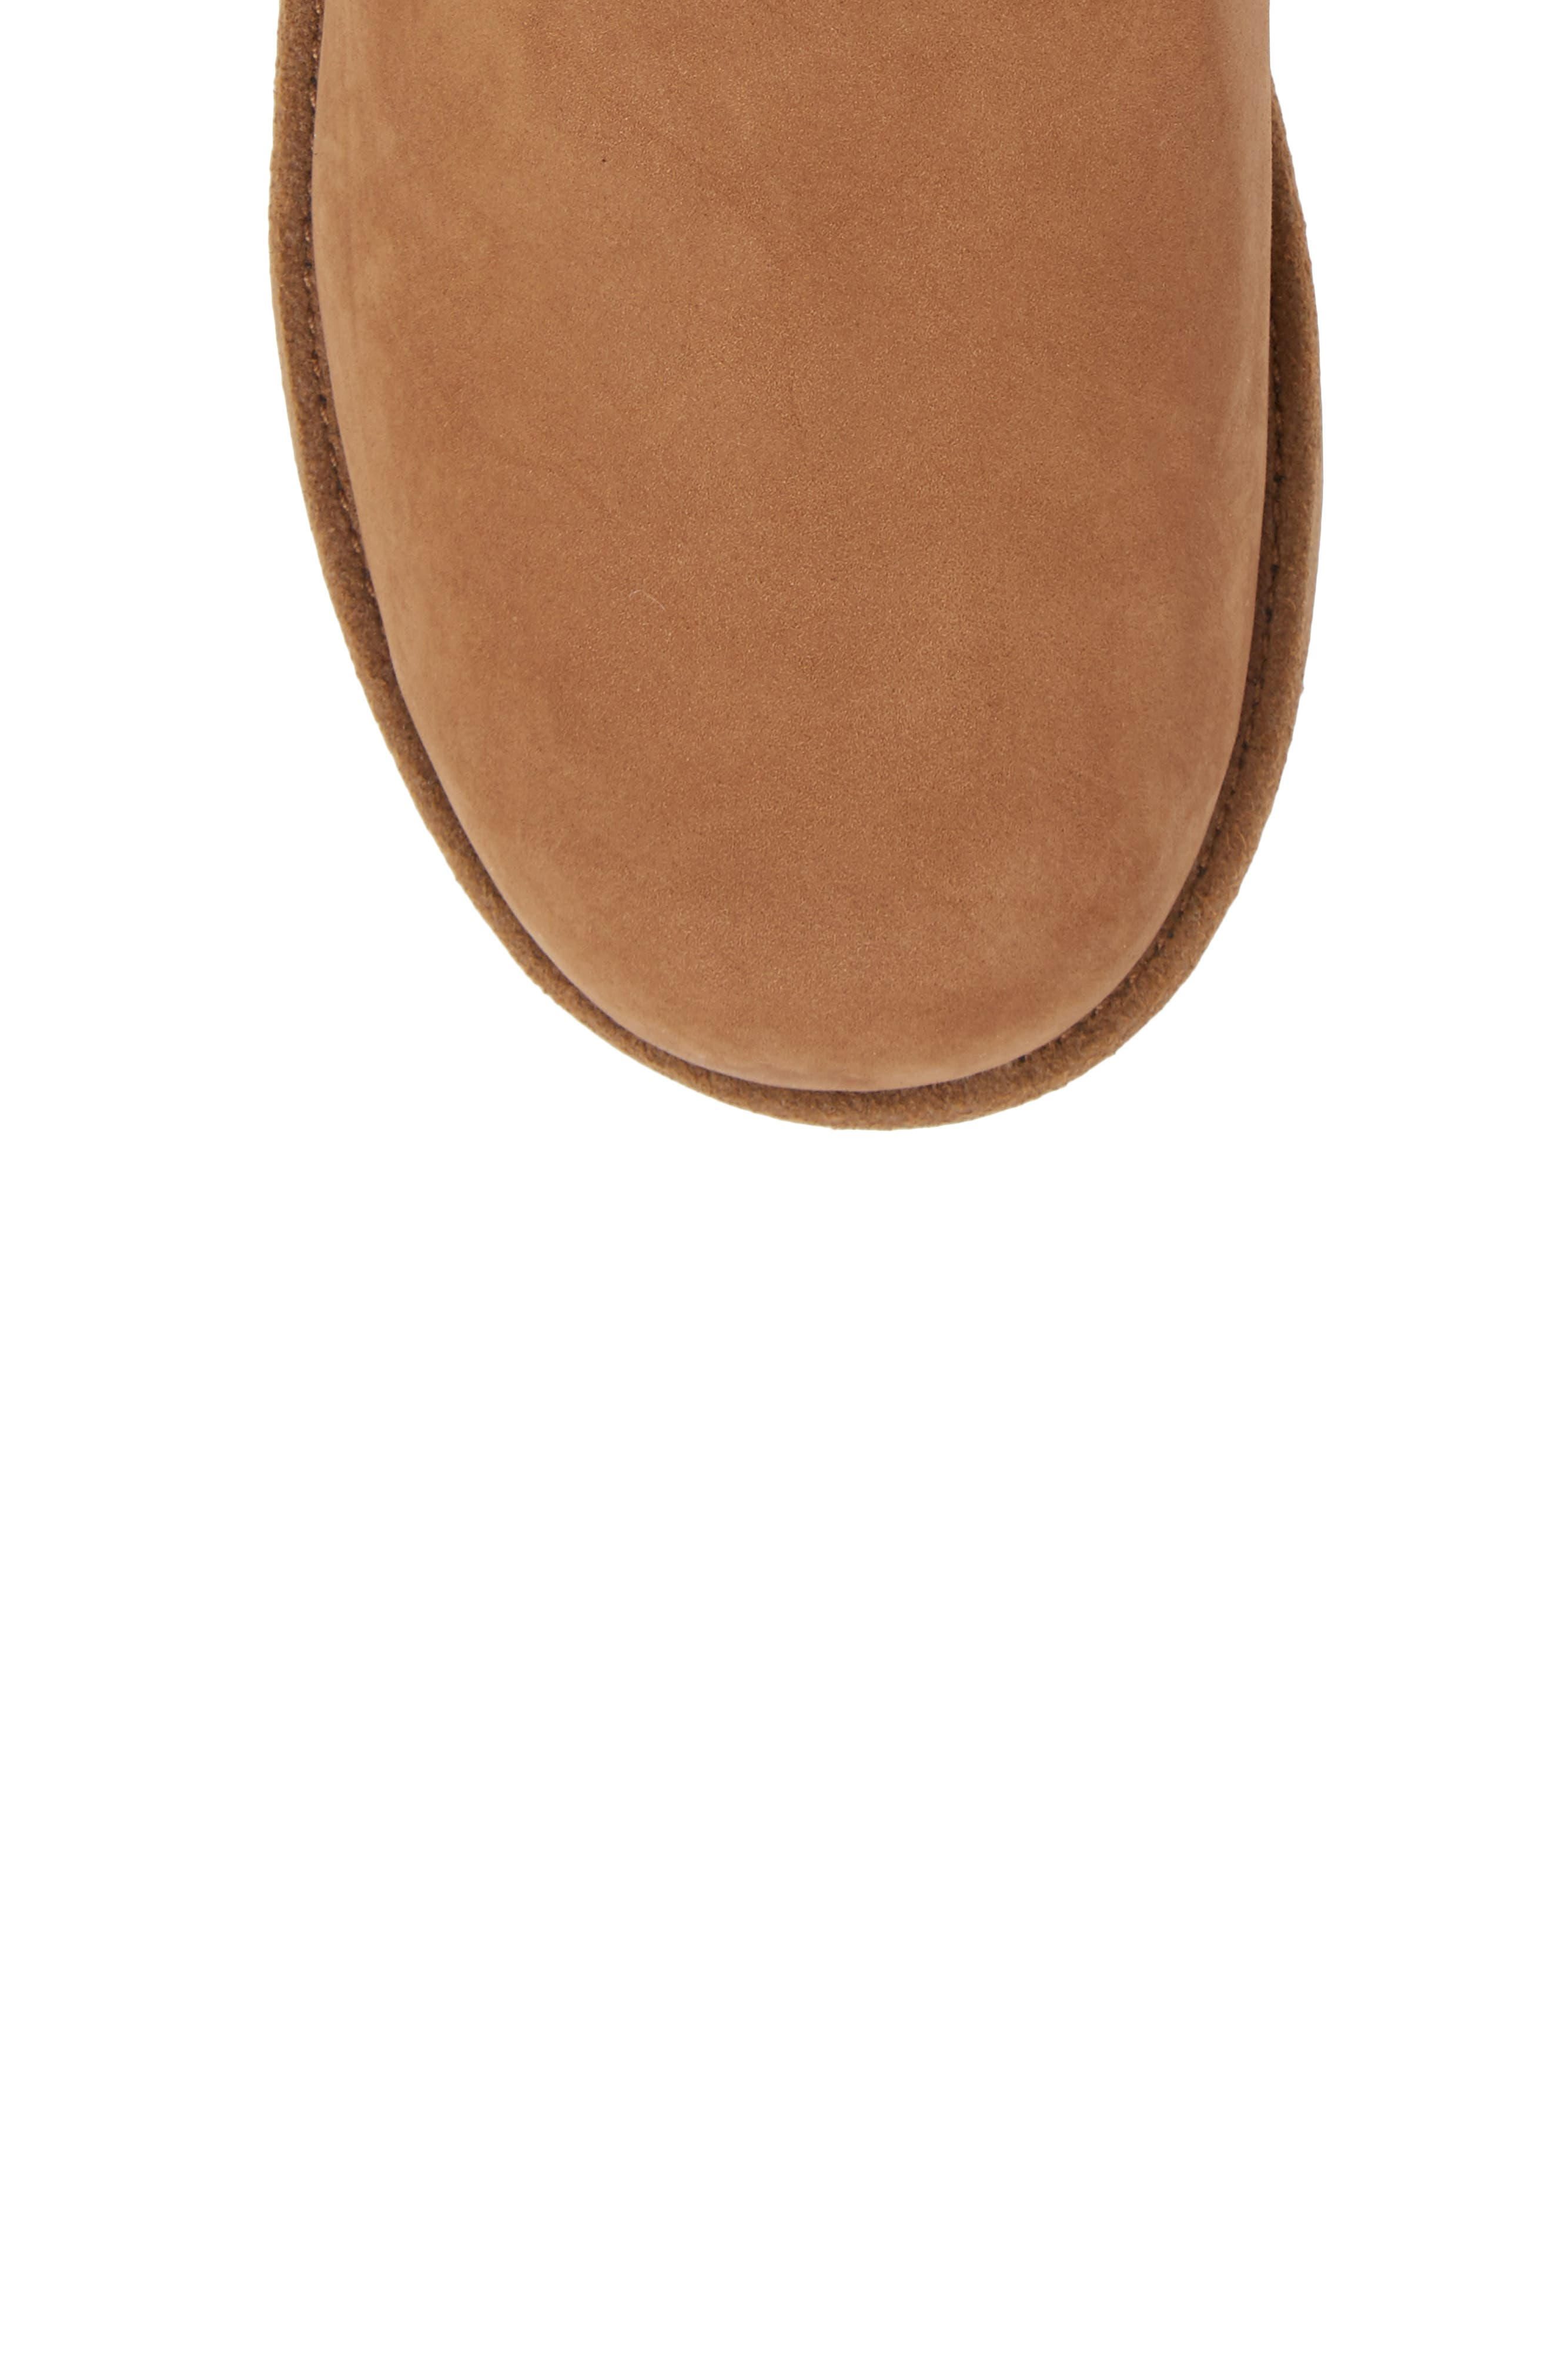 UGG<SUP>®</SUP>, Classic Short II Waterproof Boot, Alternate thumbnail 5, color, CHESTNUT